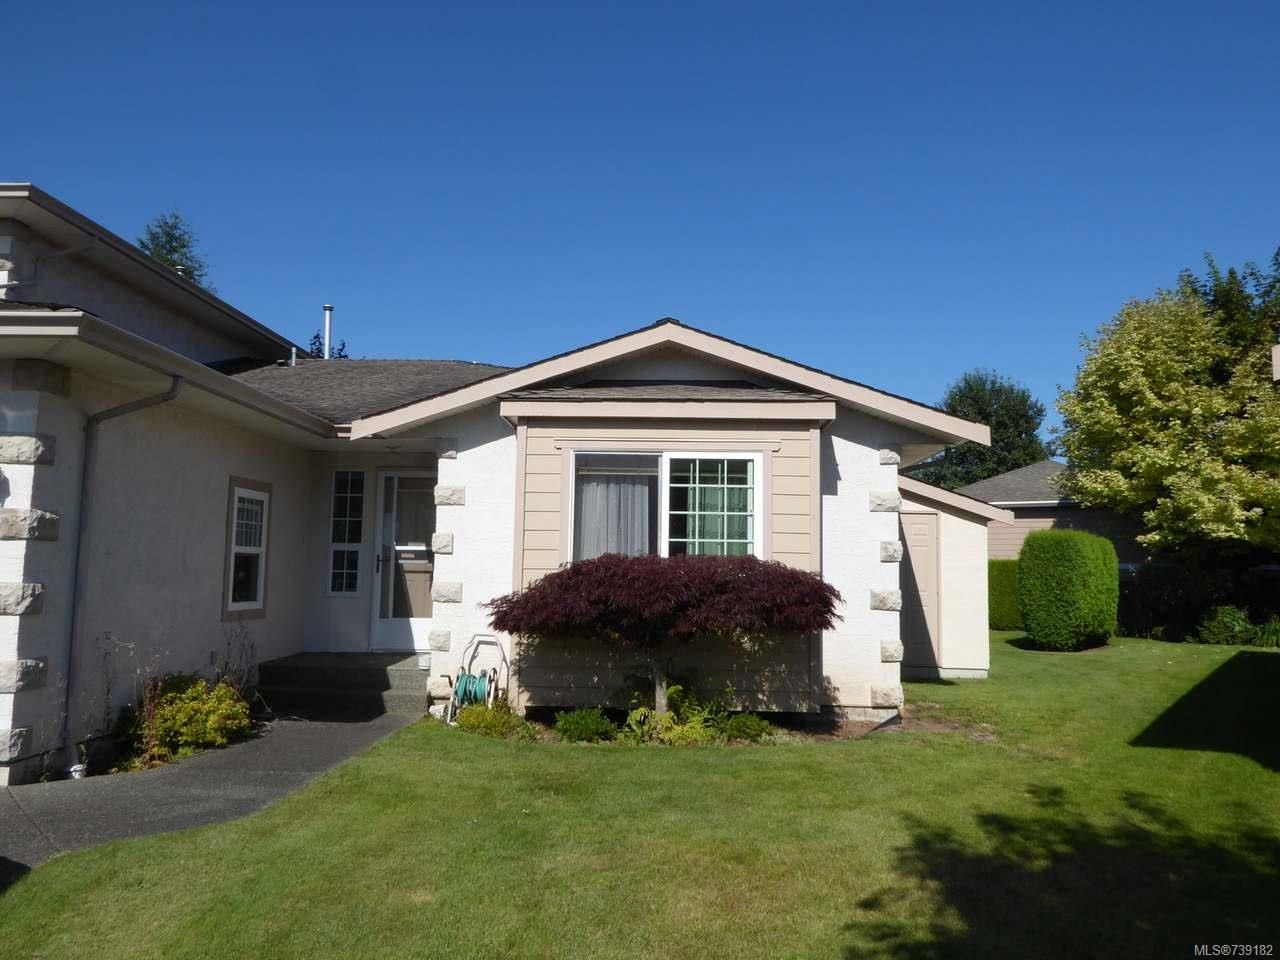 Photo 14: Photos: 20 2055 Galerno Rd in CAMPBELL RIVER: CR Willow Point Row/Townhouse for sale (Campbell River)  : MLS®# 739182